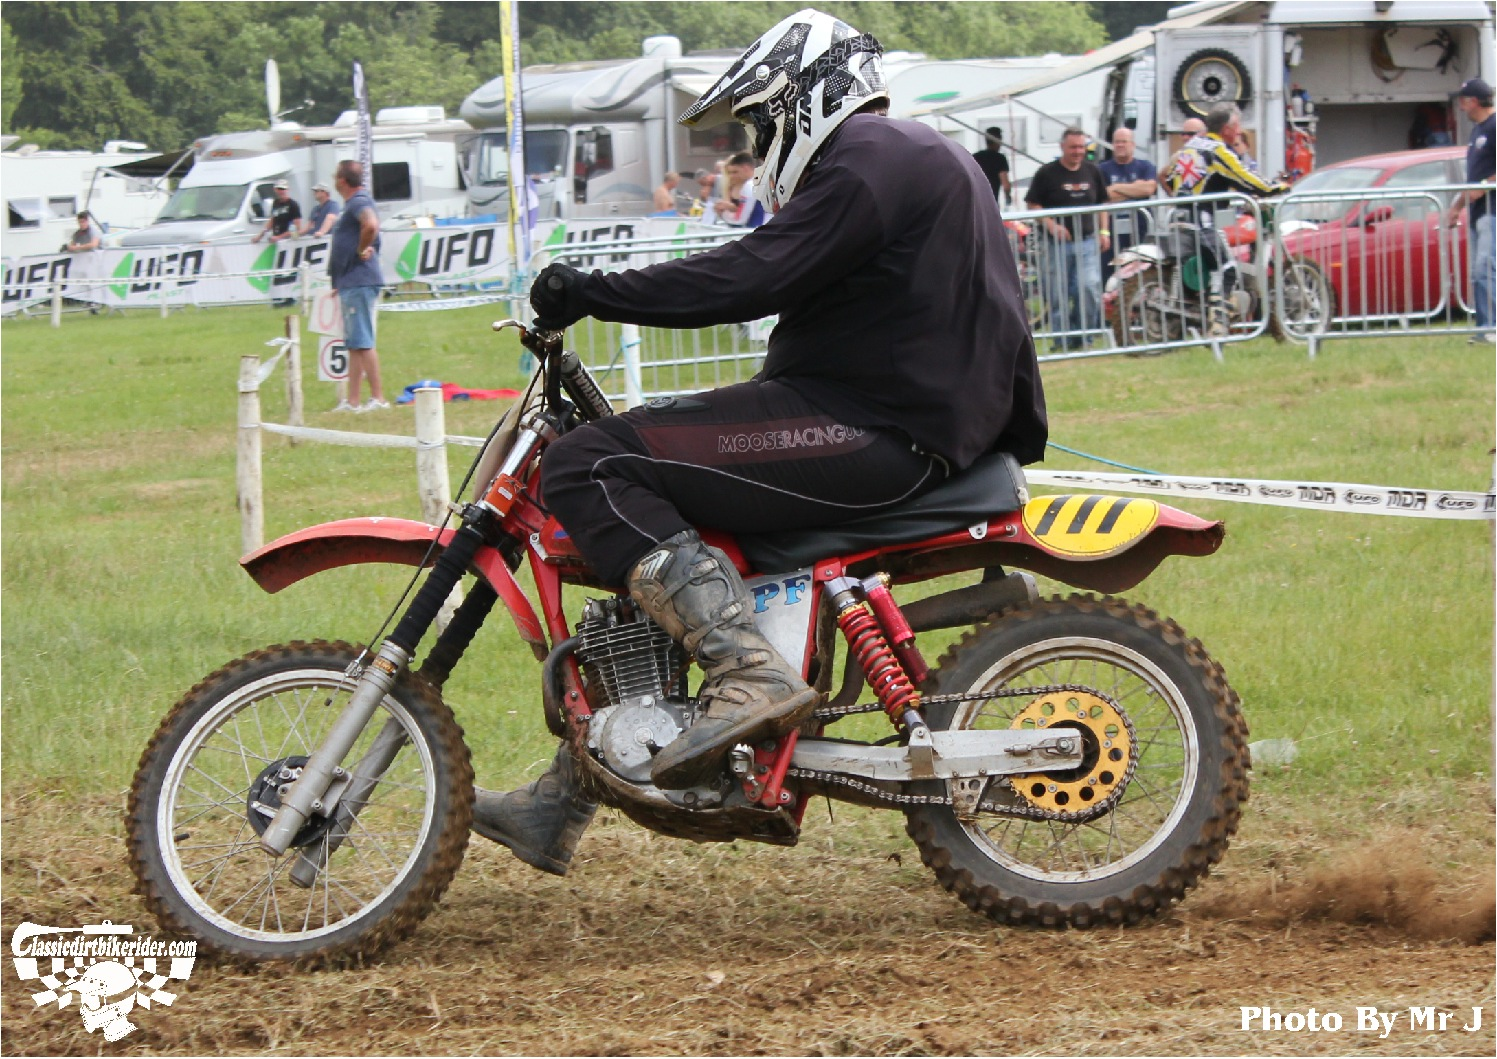 king of the castle 2015 photos Farleigh Castle twinshock motocross classicdirtbikerider.com 32